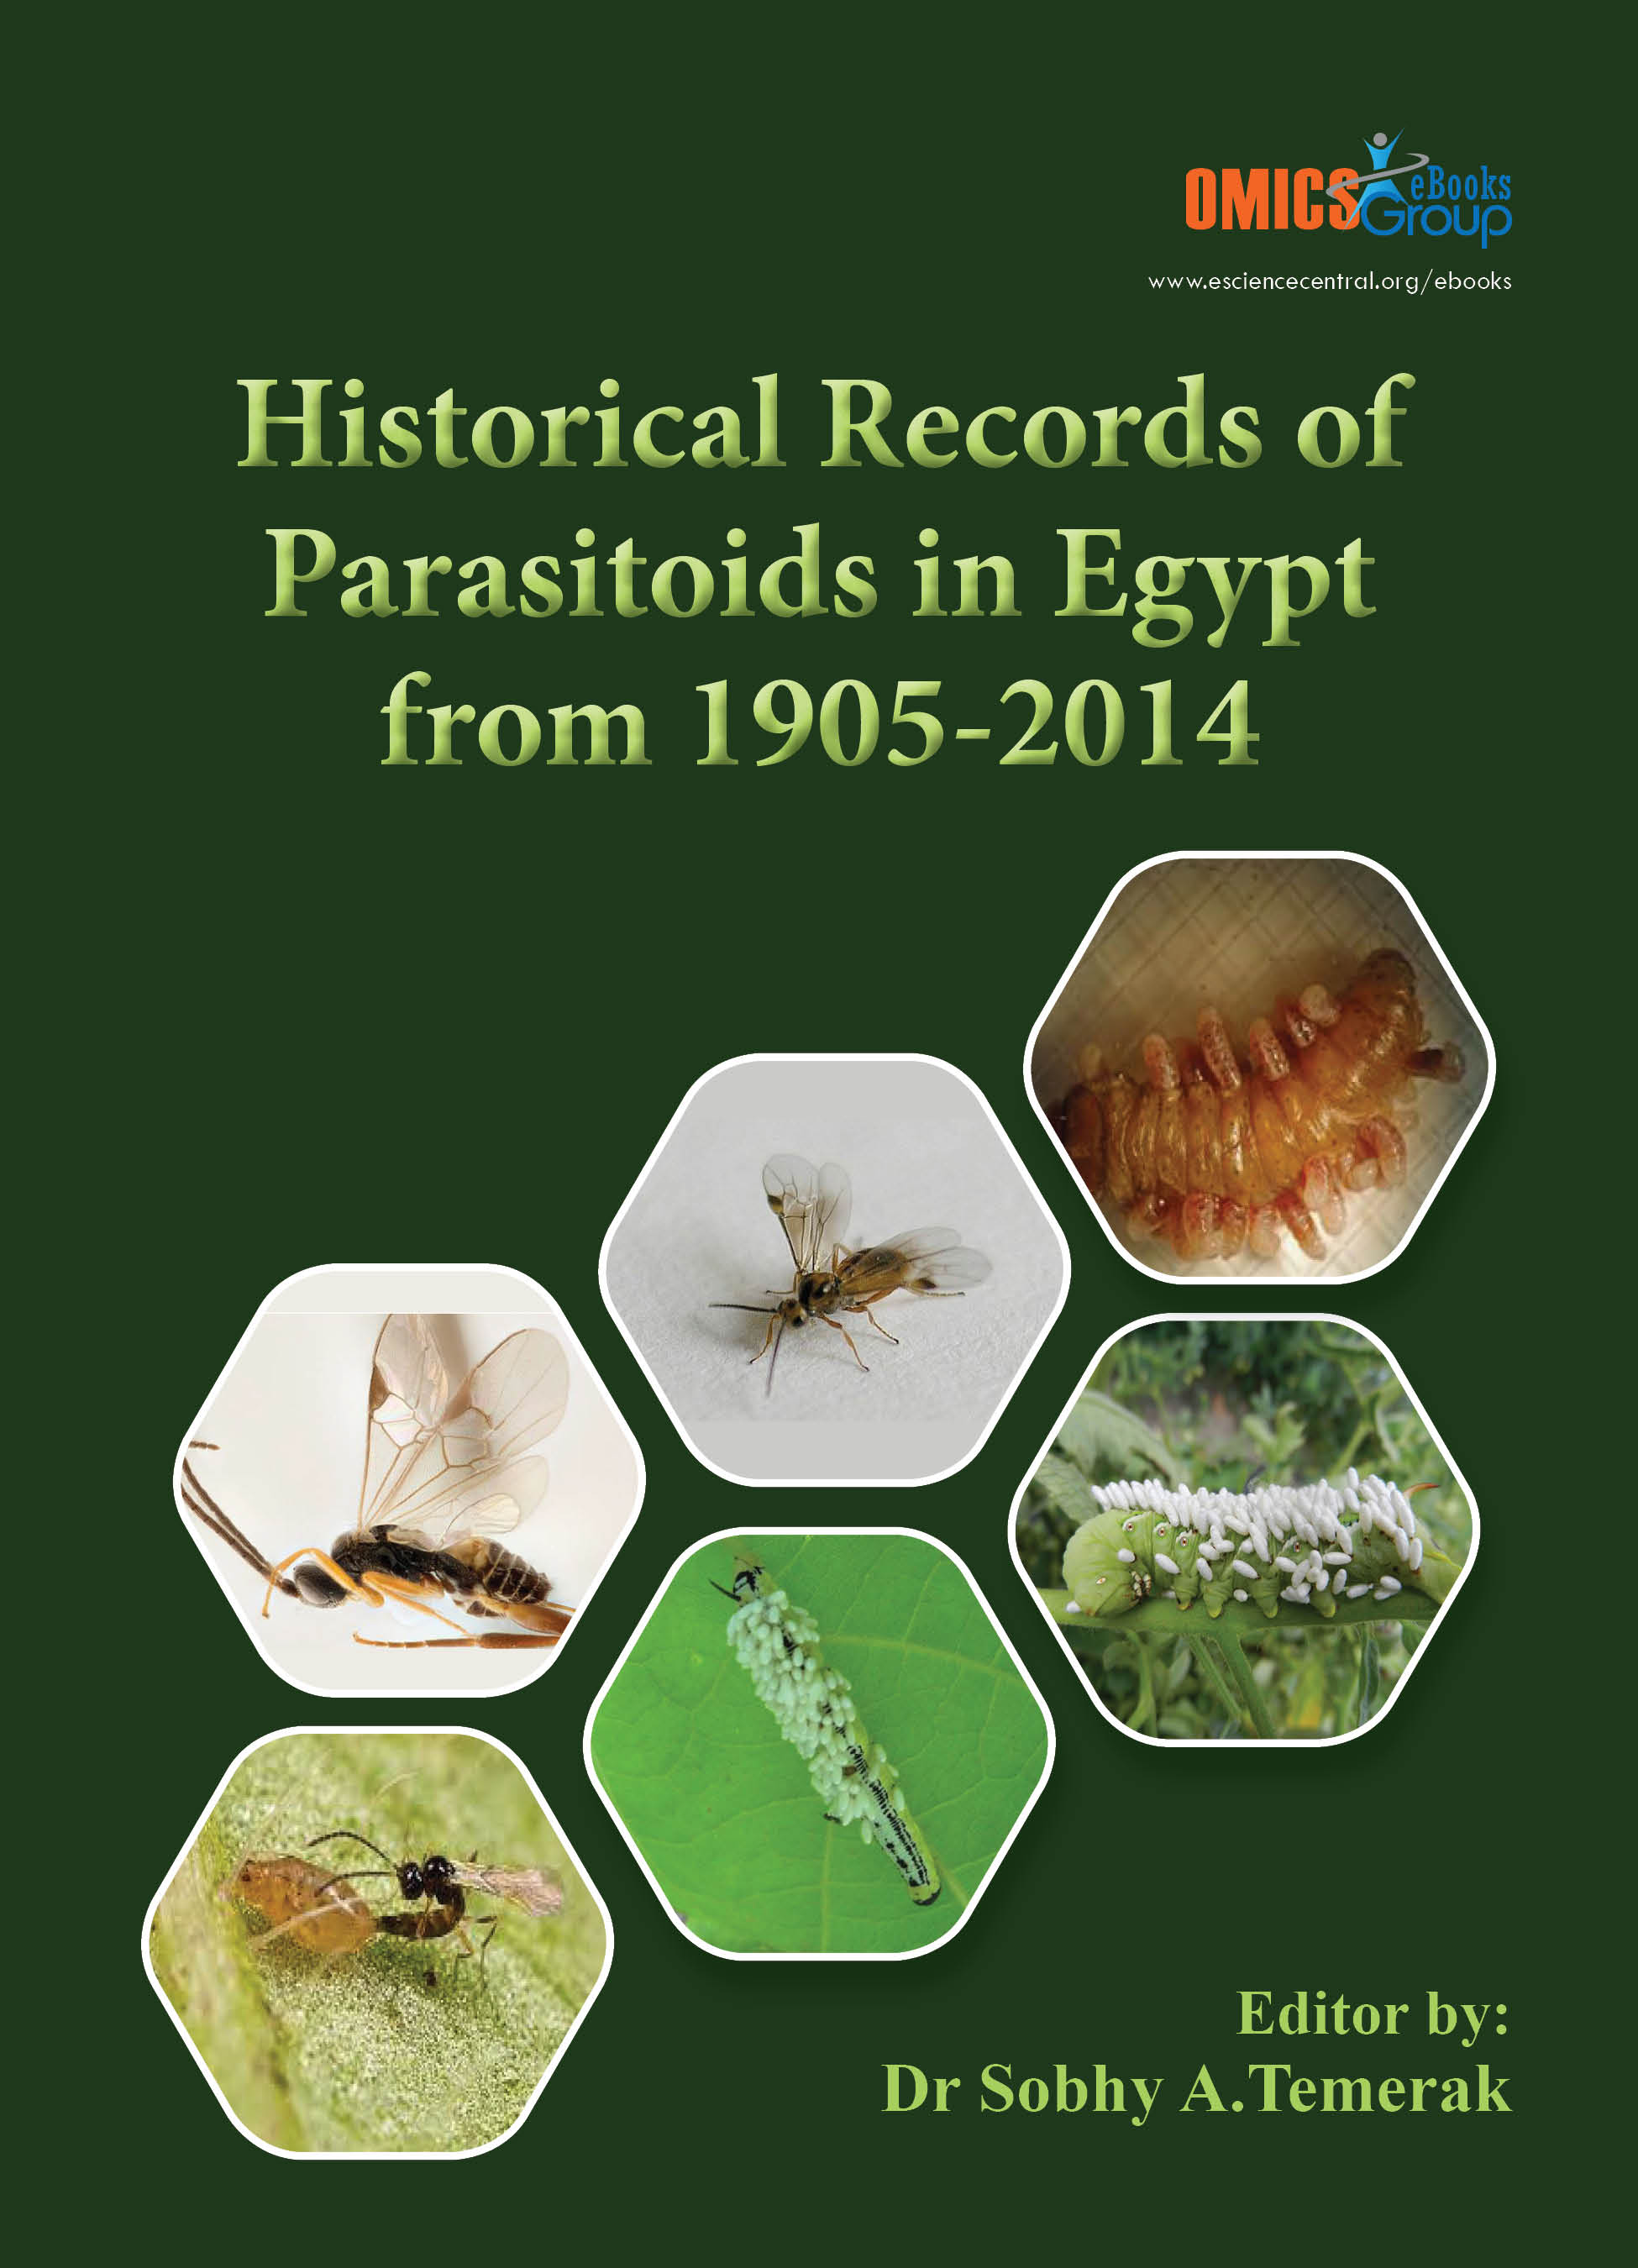 Historical records of parasitoids in Egypt from 1905-2014